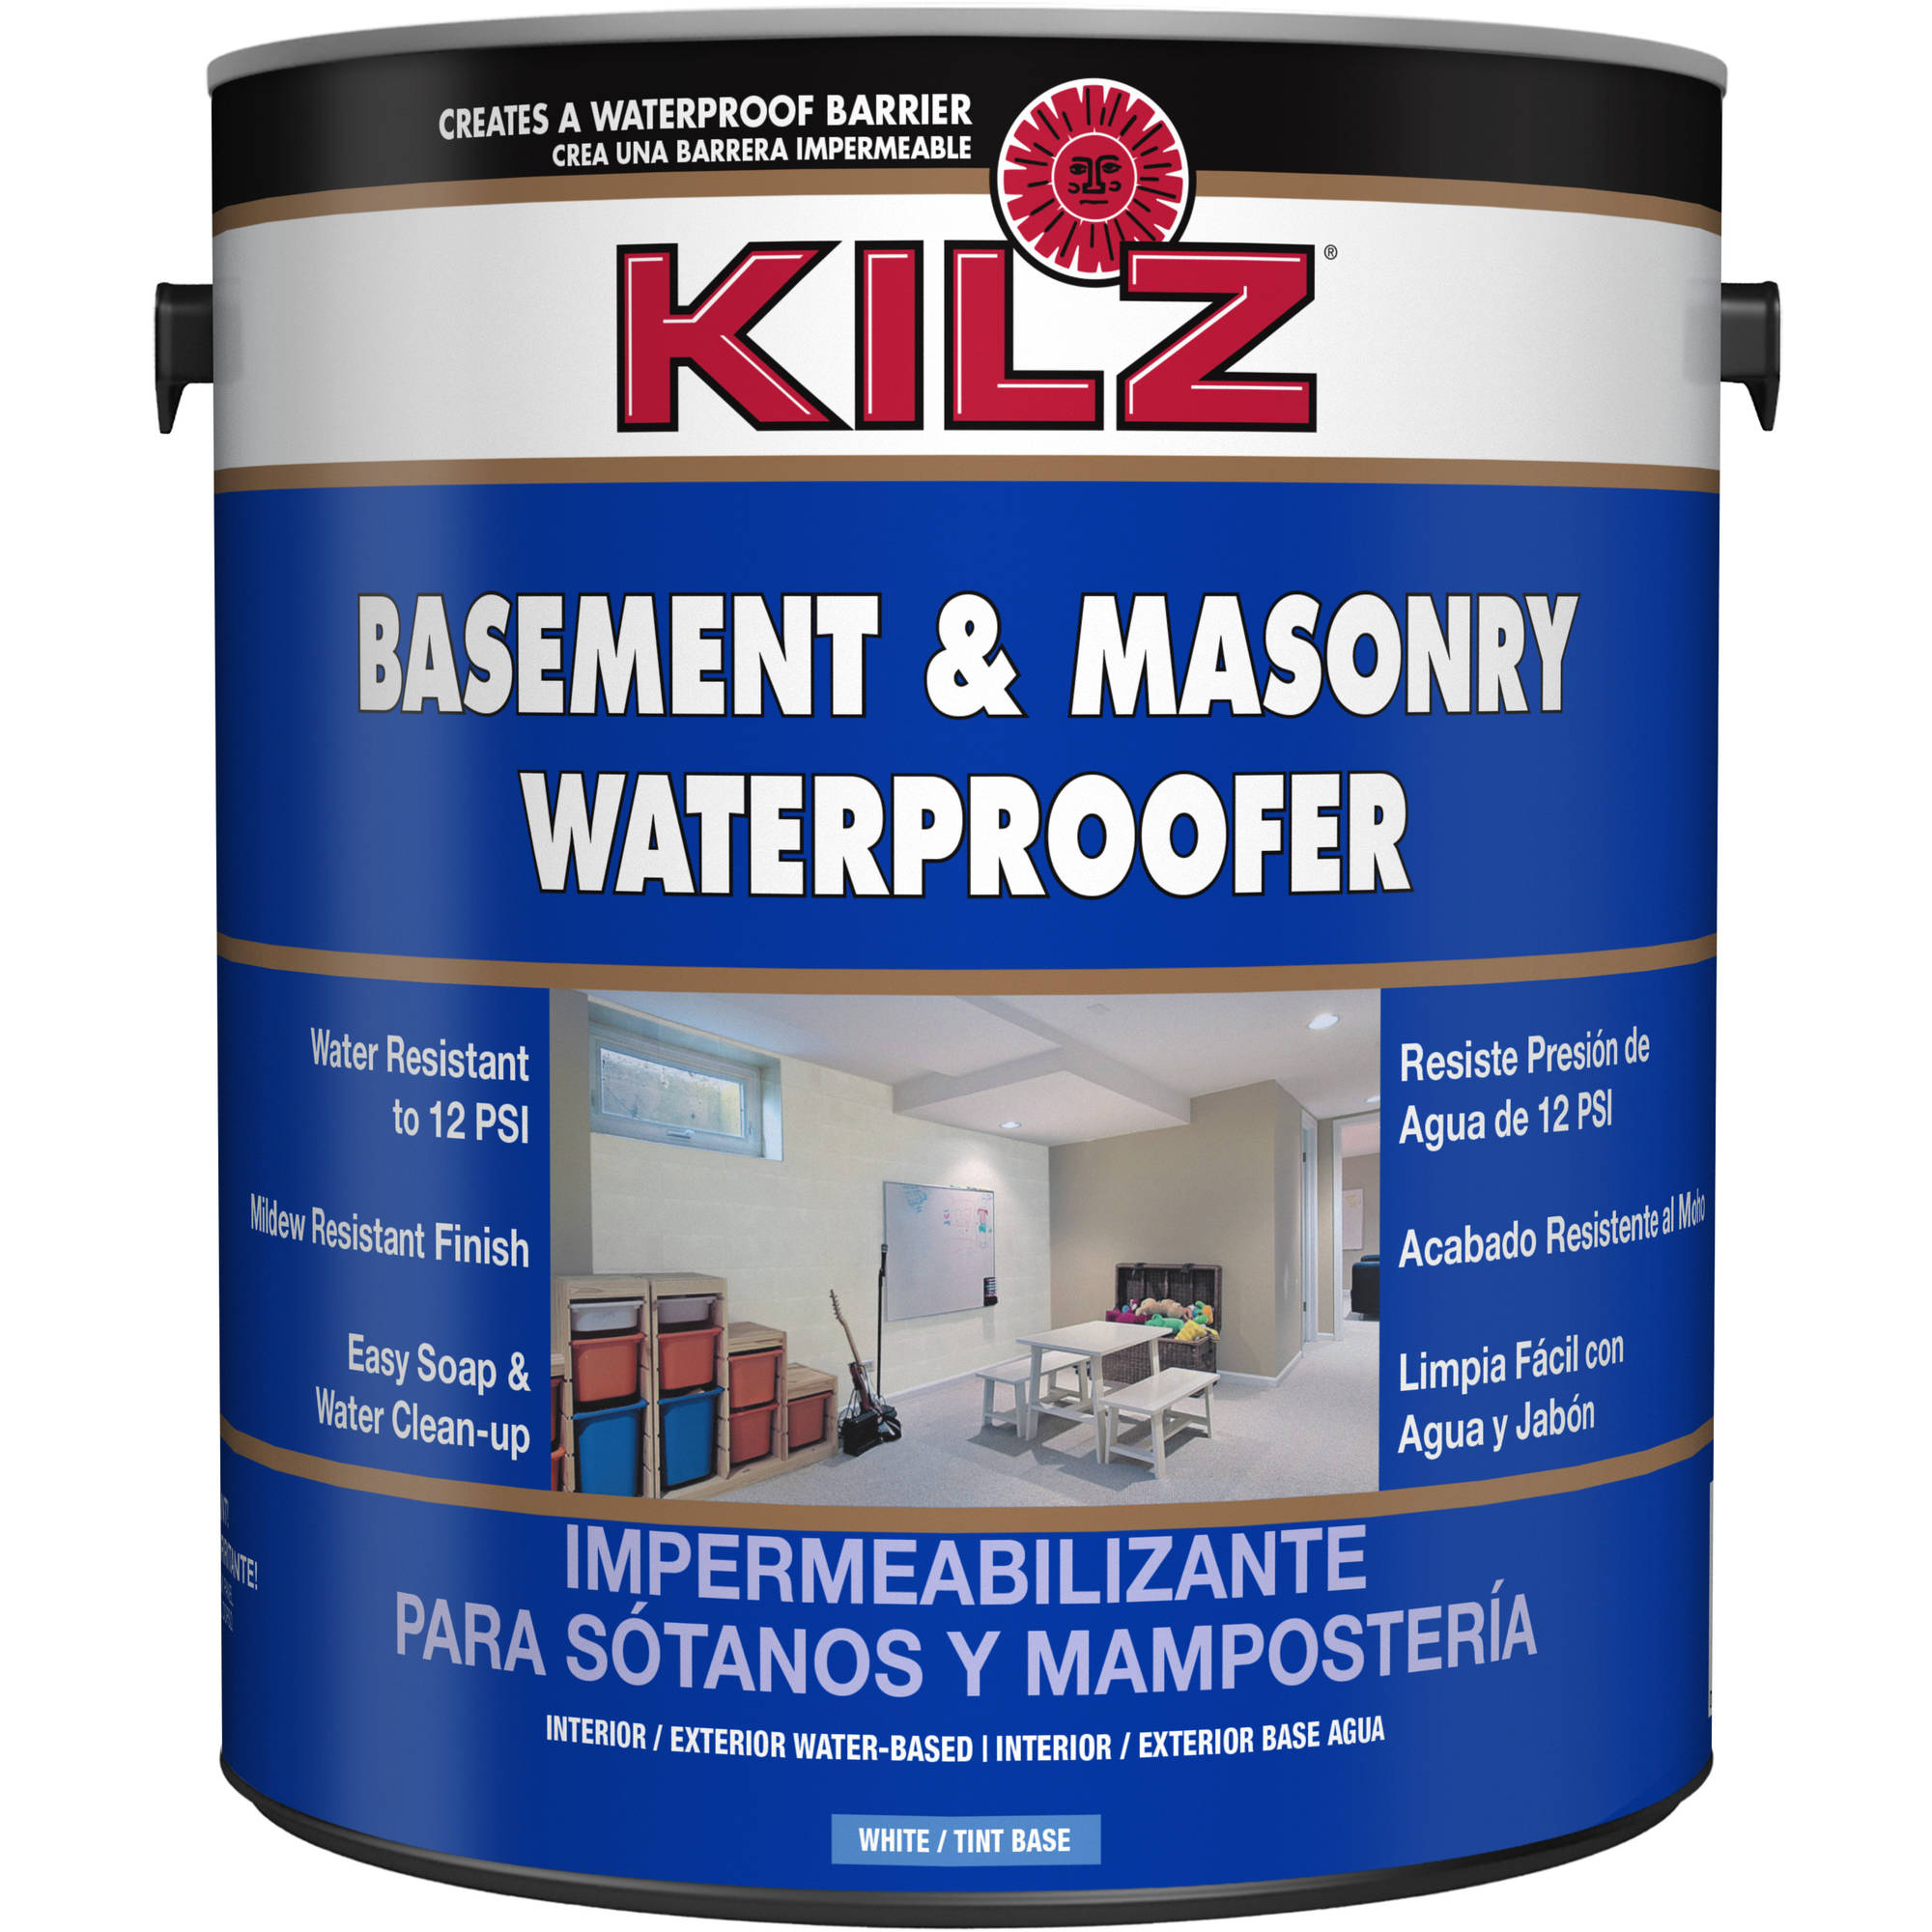 KILZ Basement and Masonry Waterproofer